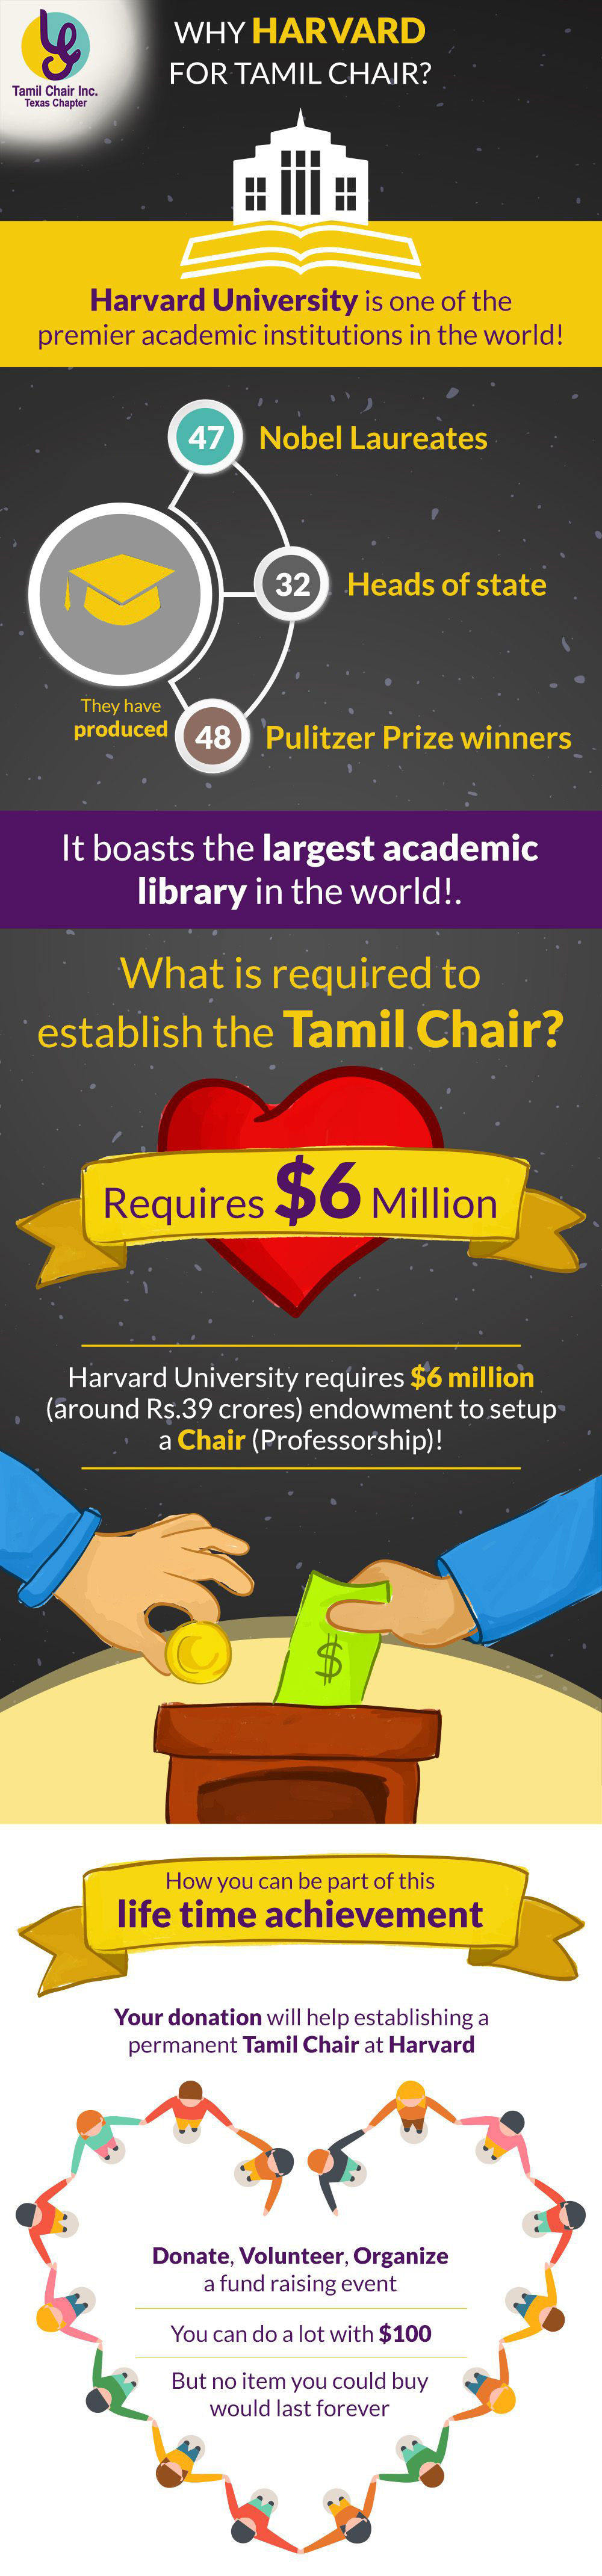 asian singles in harvard Istock/thinkstock(cambridge, mass) -- asian-american students are subject to racial discrimination during harvard university's admission process, a non-profit group.